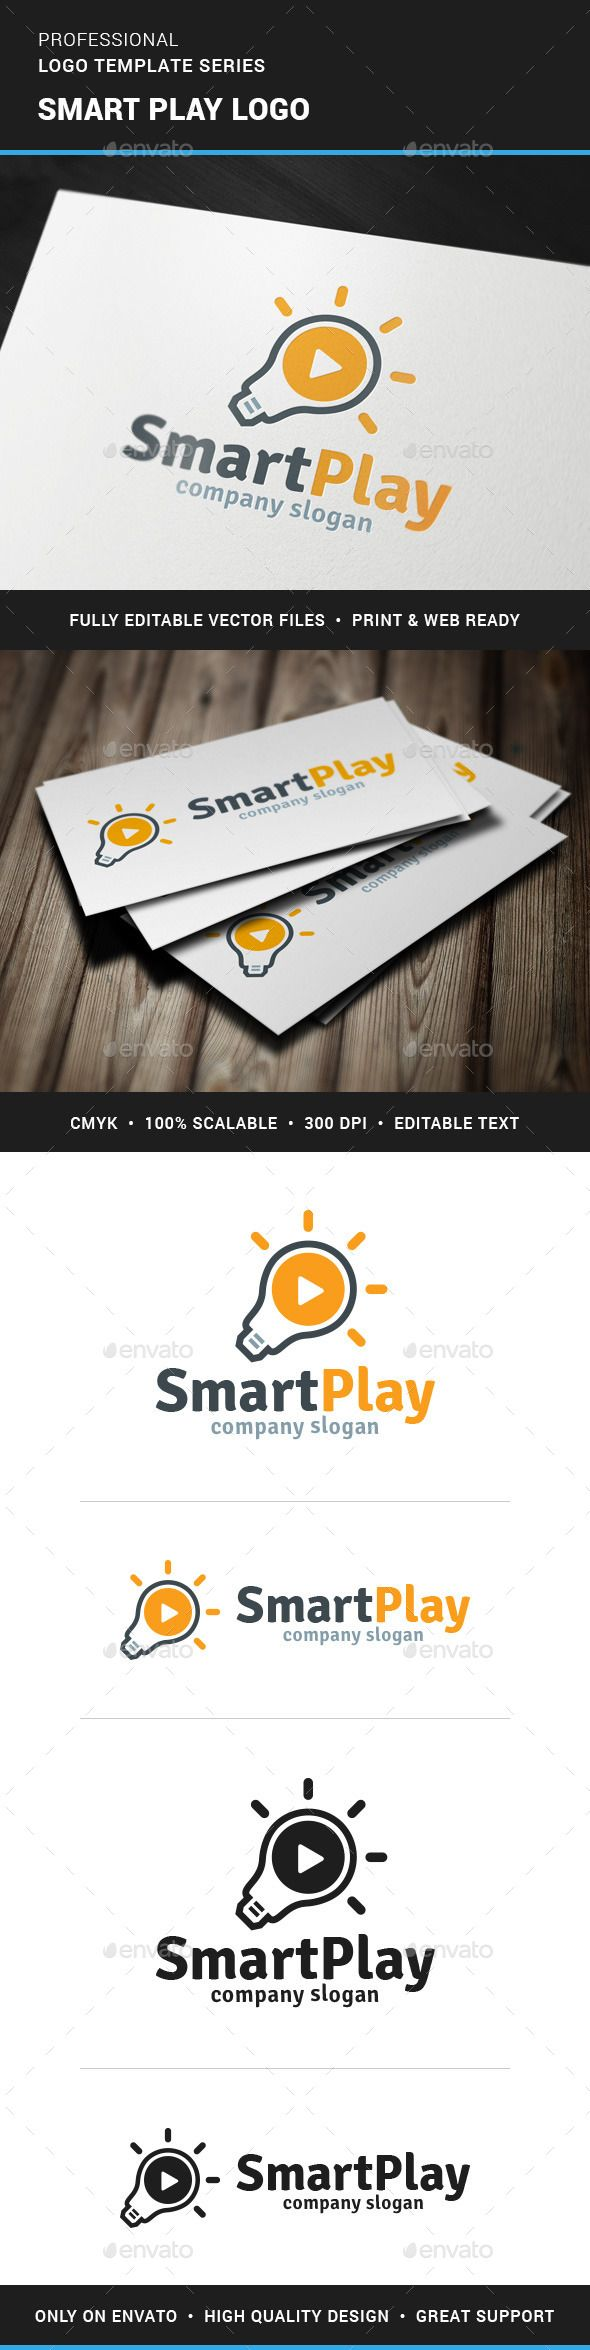 Smart Play Logo Template — Vector EPS #icon #mind • Available here → https://graphicriver.net/item/smart-play-logo-template/11606726?ref=pxcr